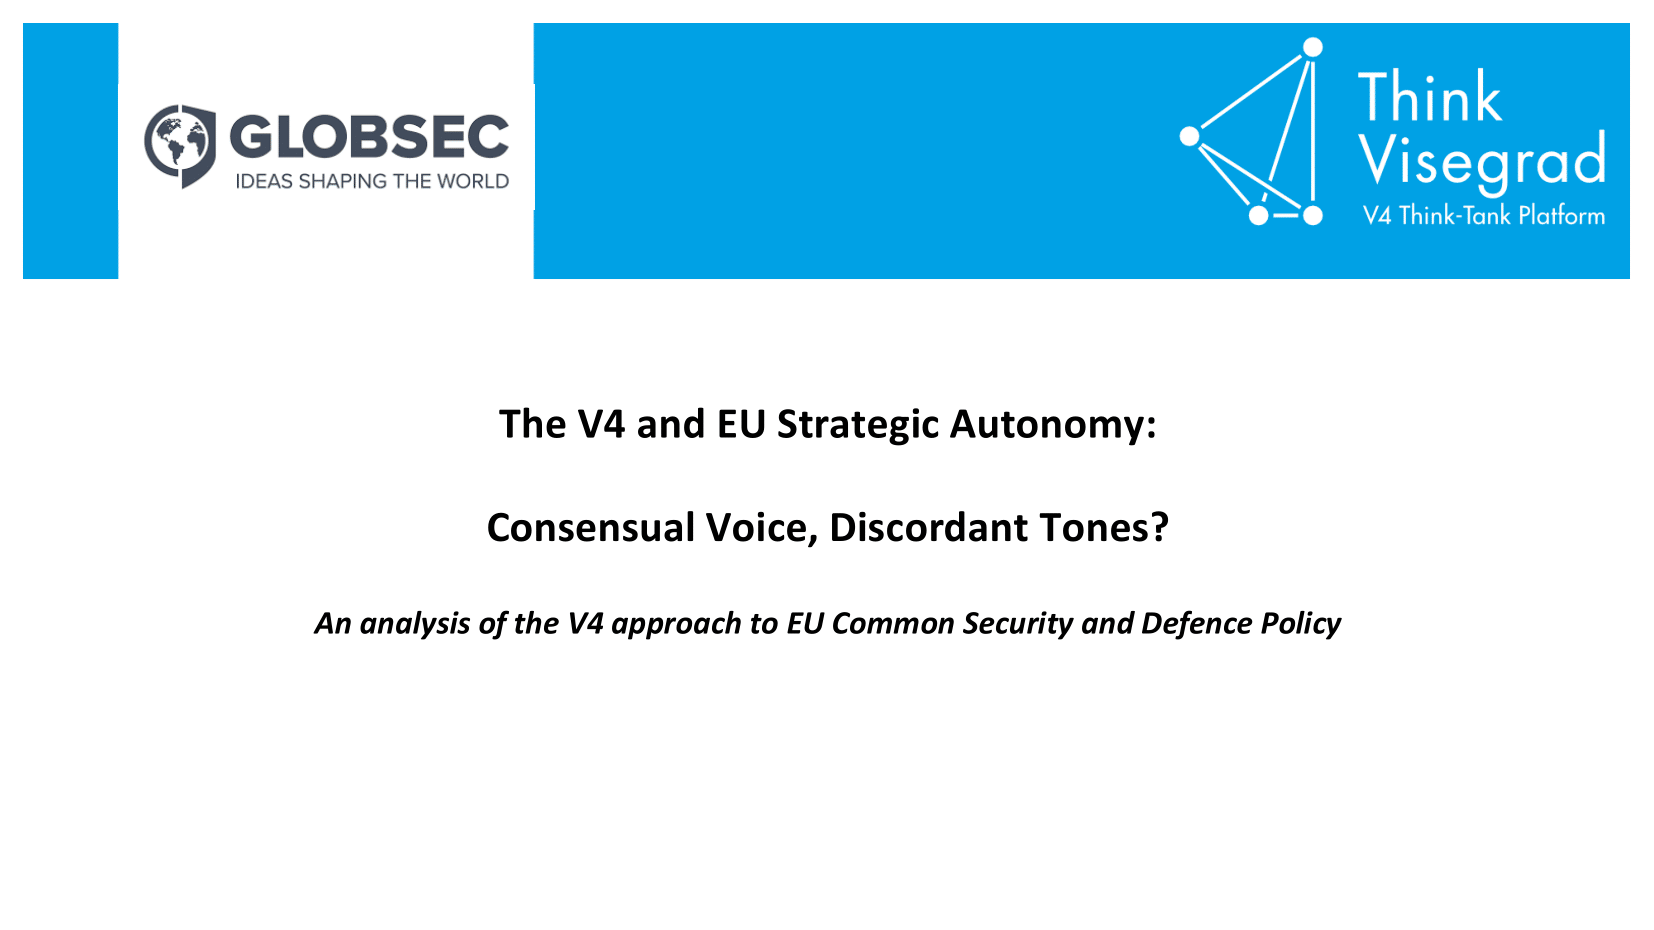 The V4 and EU Strategic Autonomy: Consensual Voice, Discordant Tones?